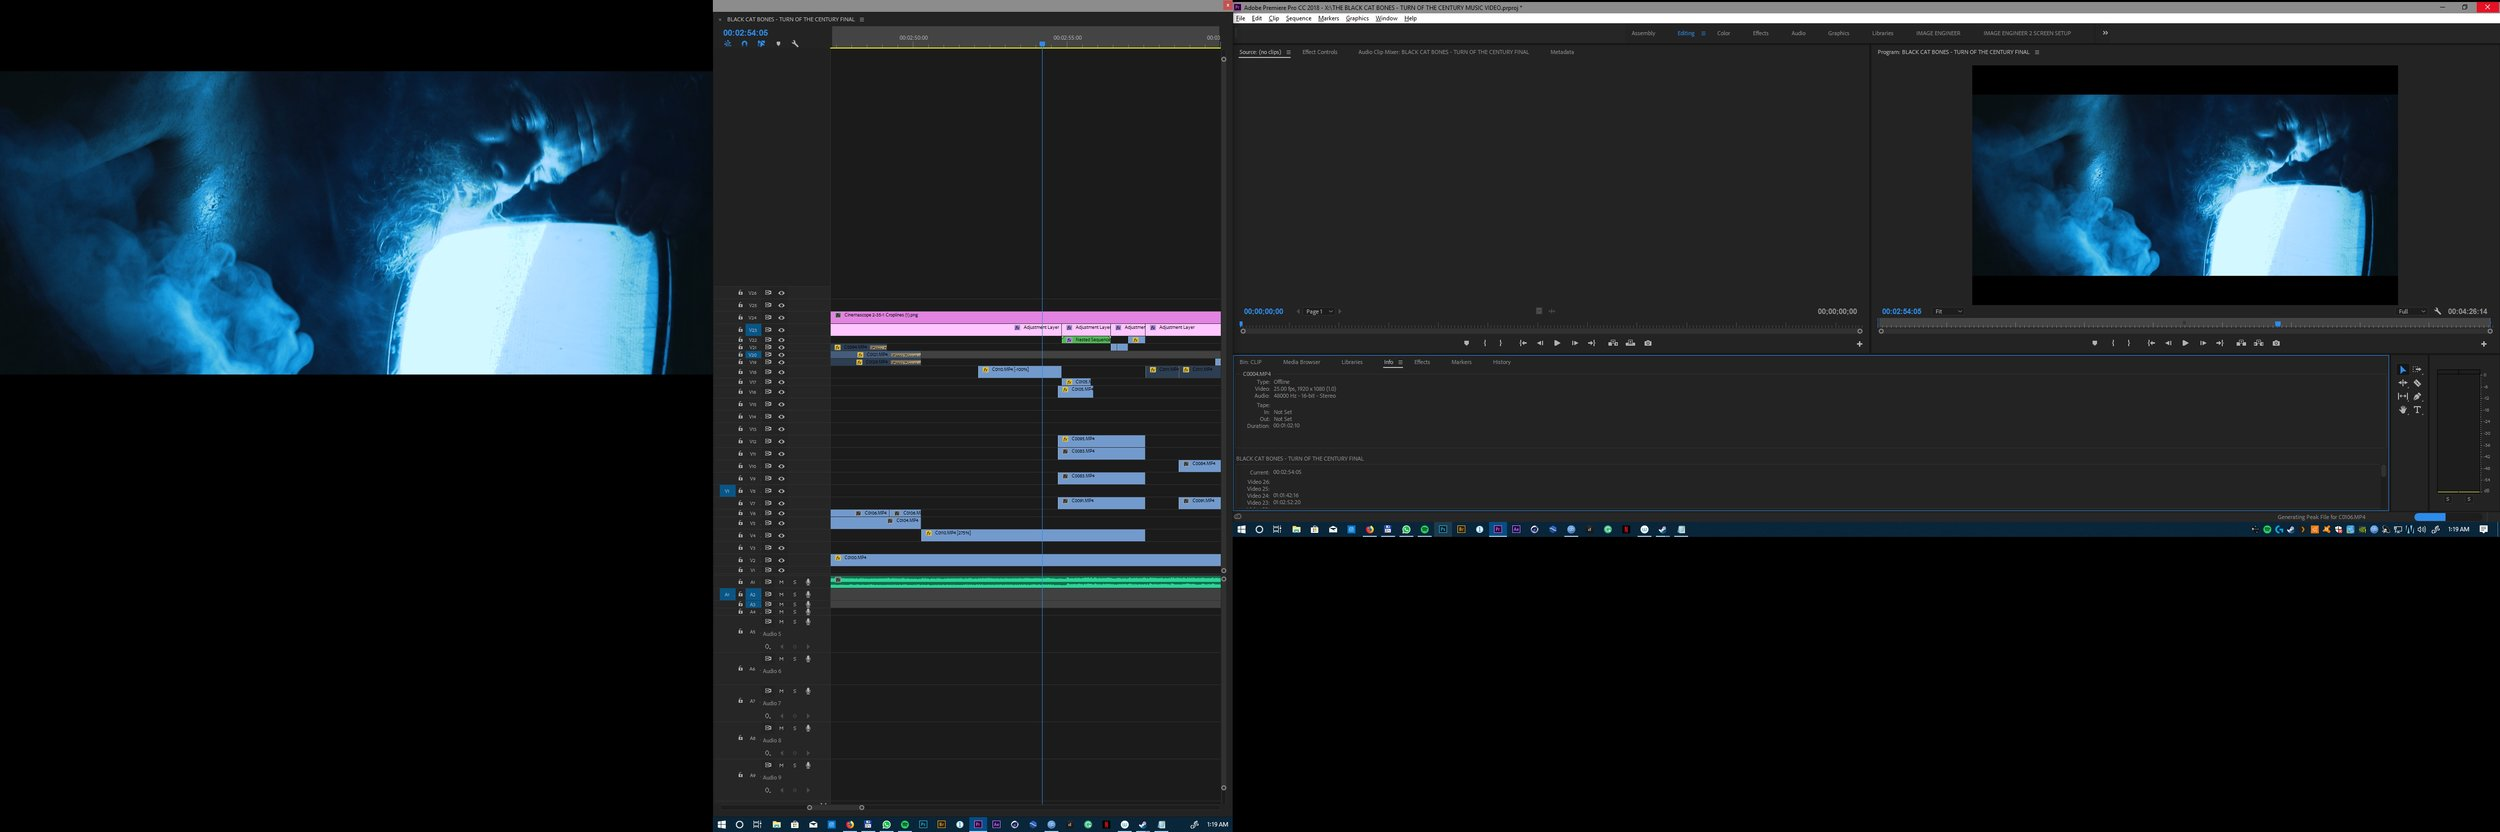 A screenshot of the editing process in Adobe Premiere CC 2018, spanned across three screens.